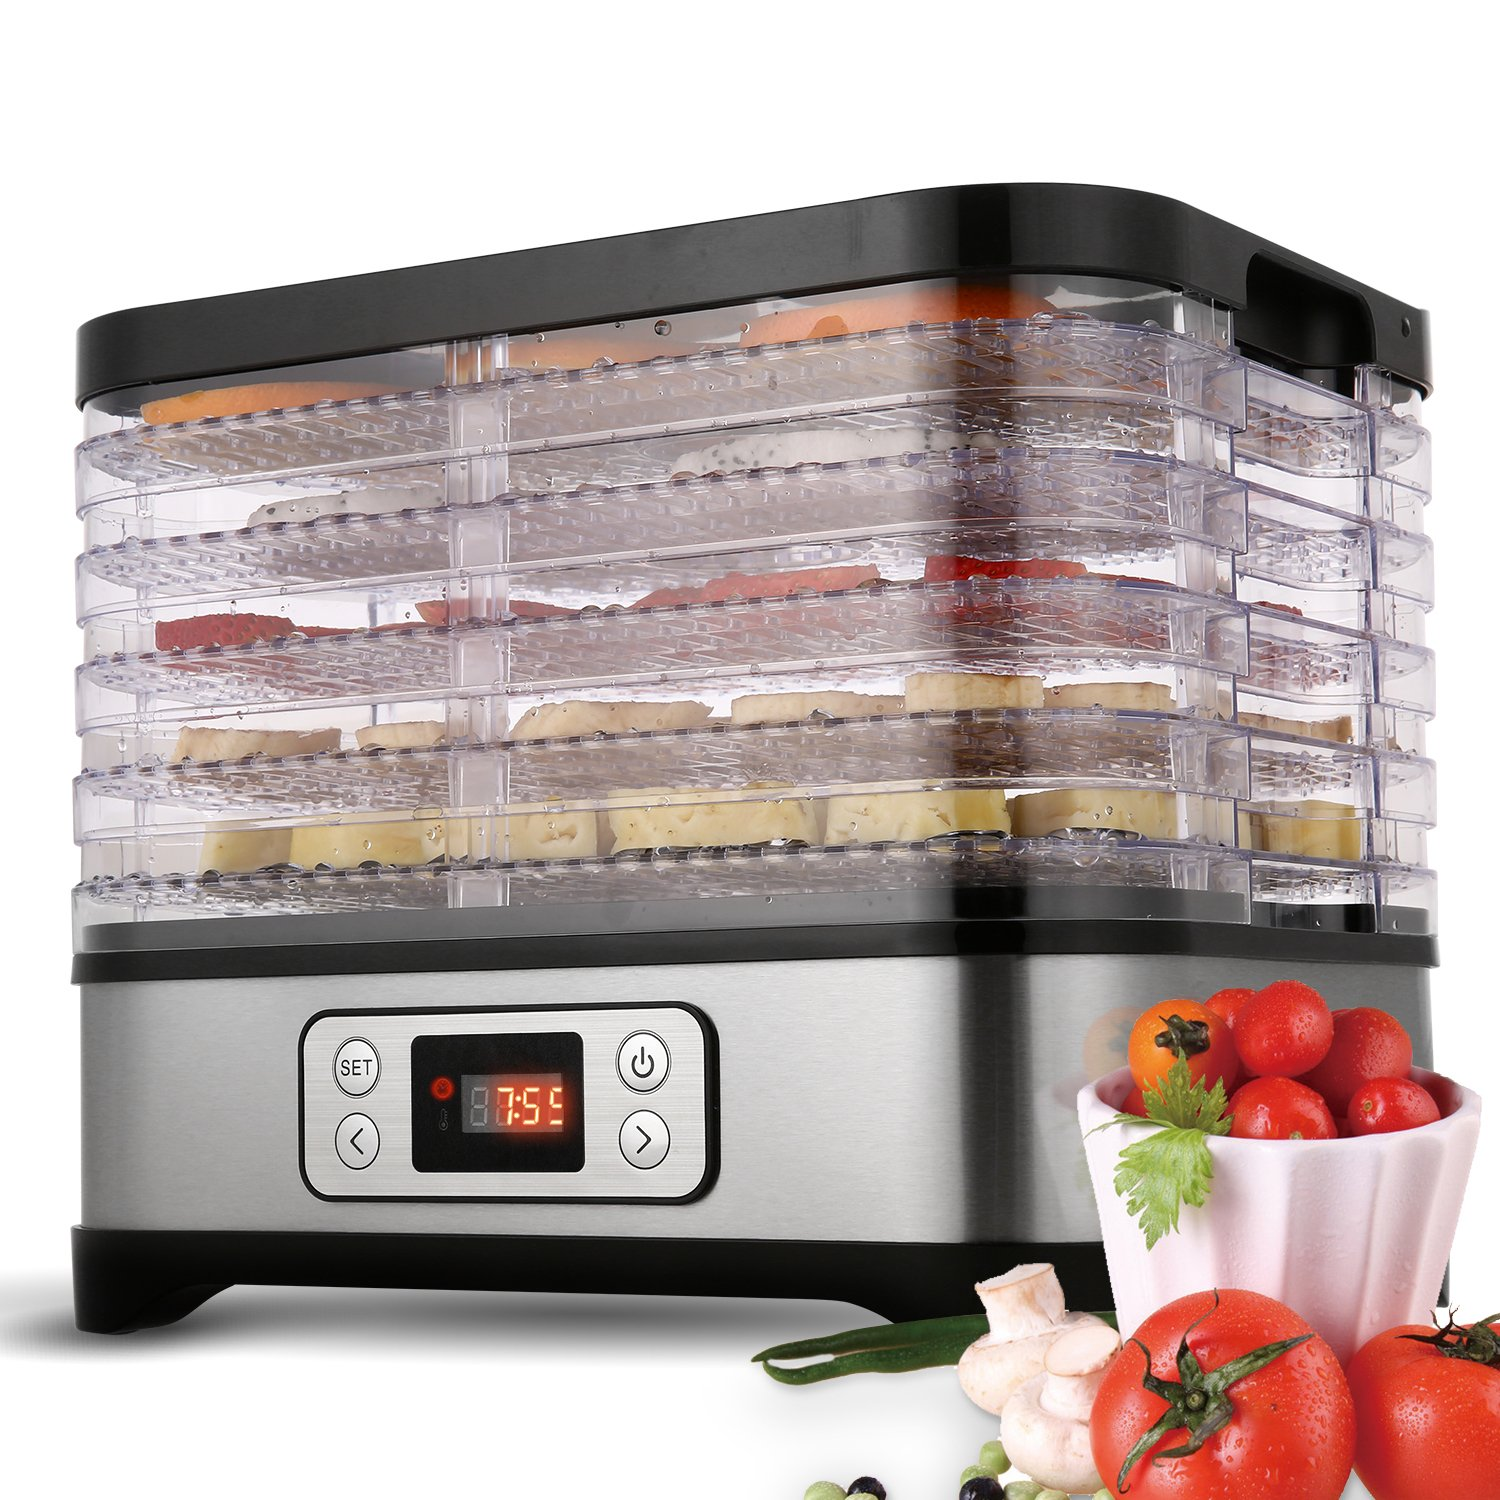 Electric Food Dehydrator Machine, 5-Tier Food Preserver with Temperature Control from 95ºF to 158ºF for Beef Jerky, Dried Fruits, Vegetables, BPA free & Dishwasher Safe (LCD/250W)